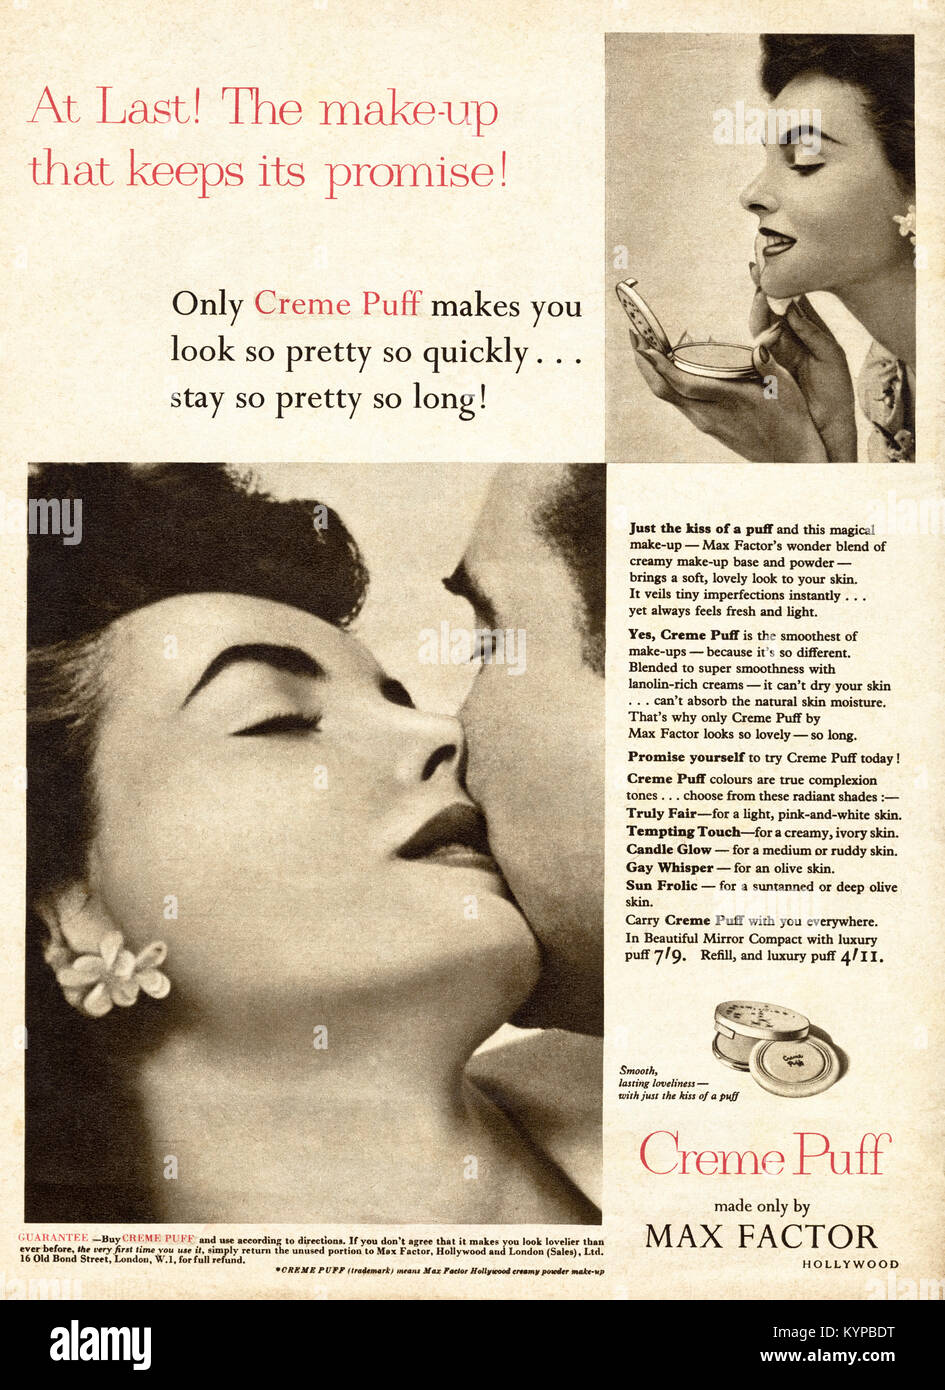 1950s old vintage original advert advertising Max Factor cosmetics in magazine circa 1954 - Stock Image